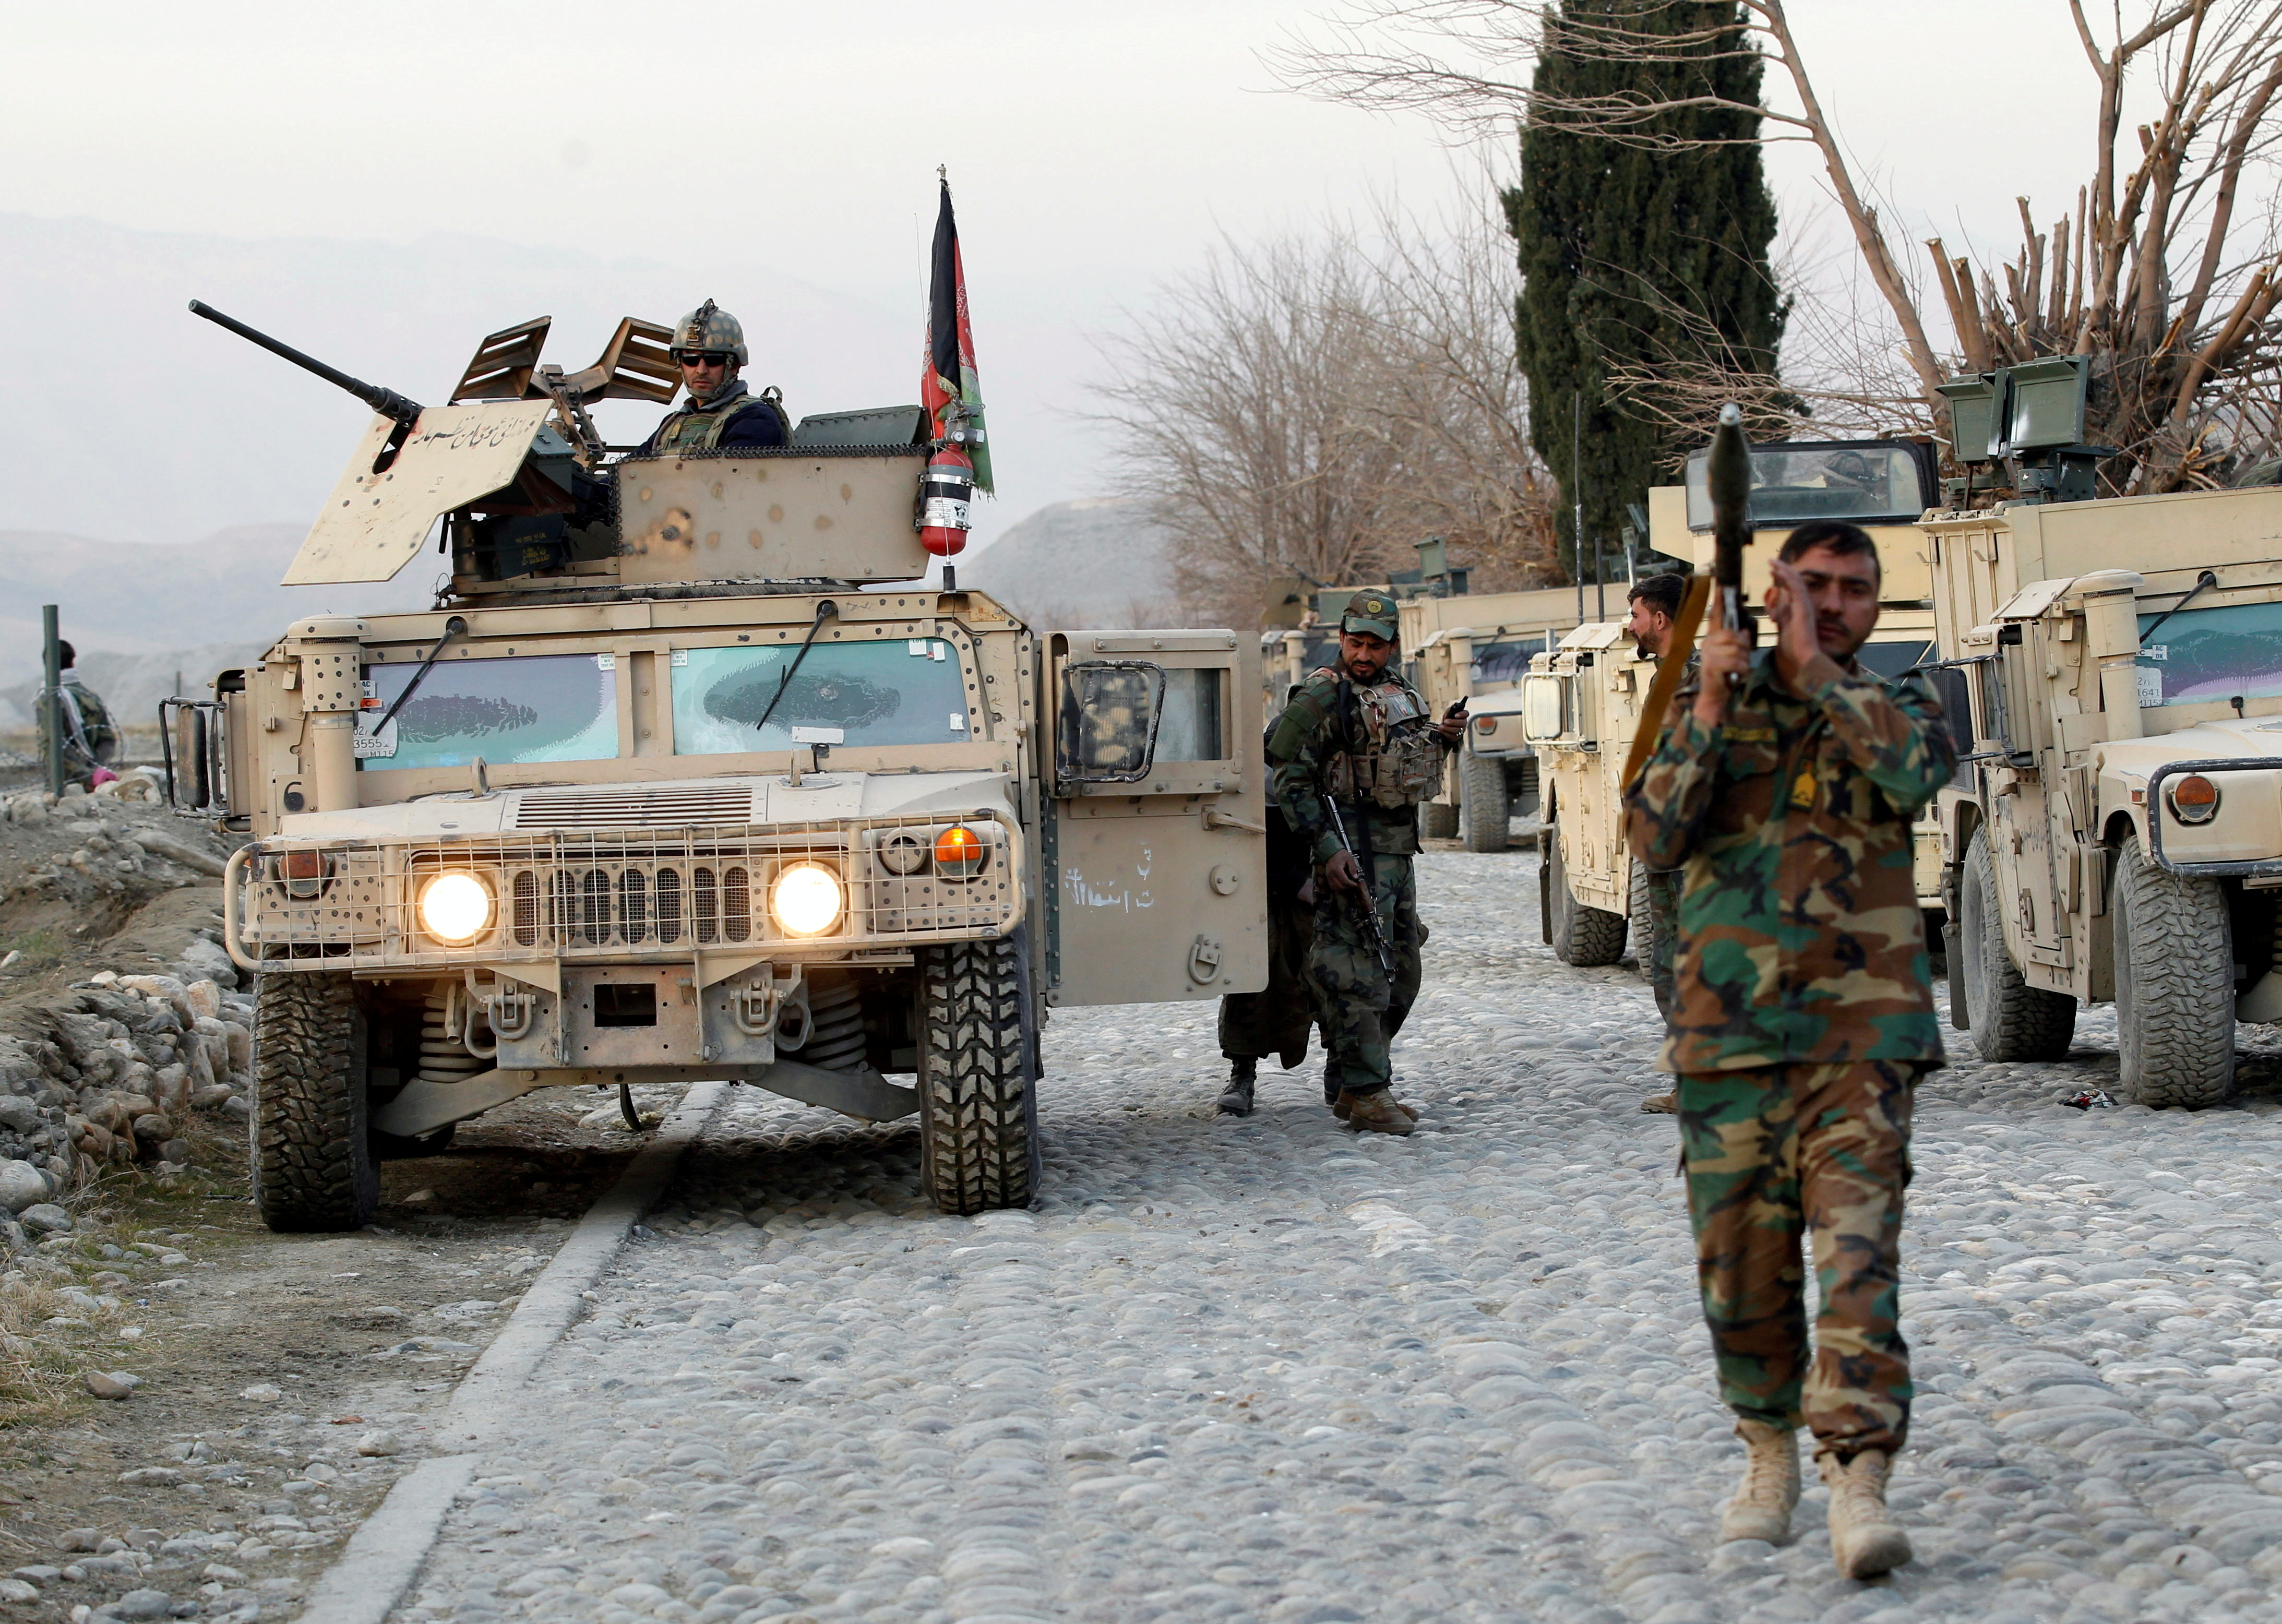 Security forces in Afghanistan